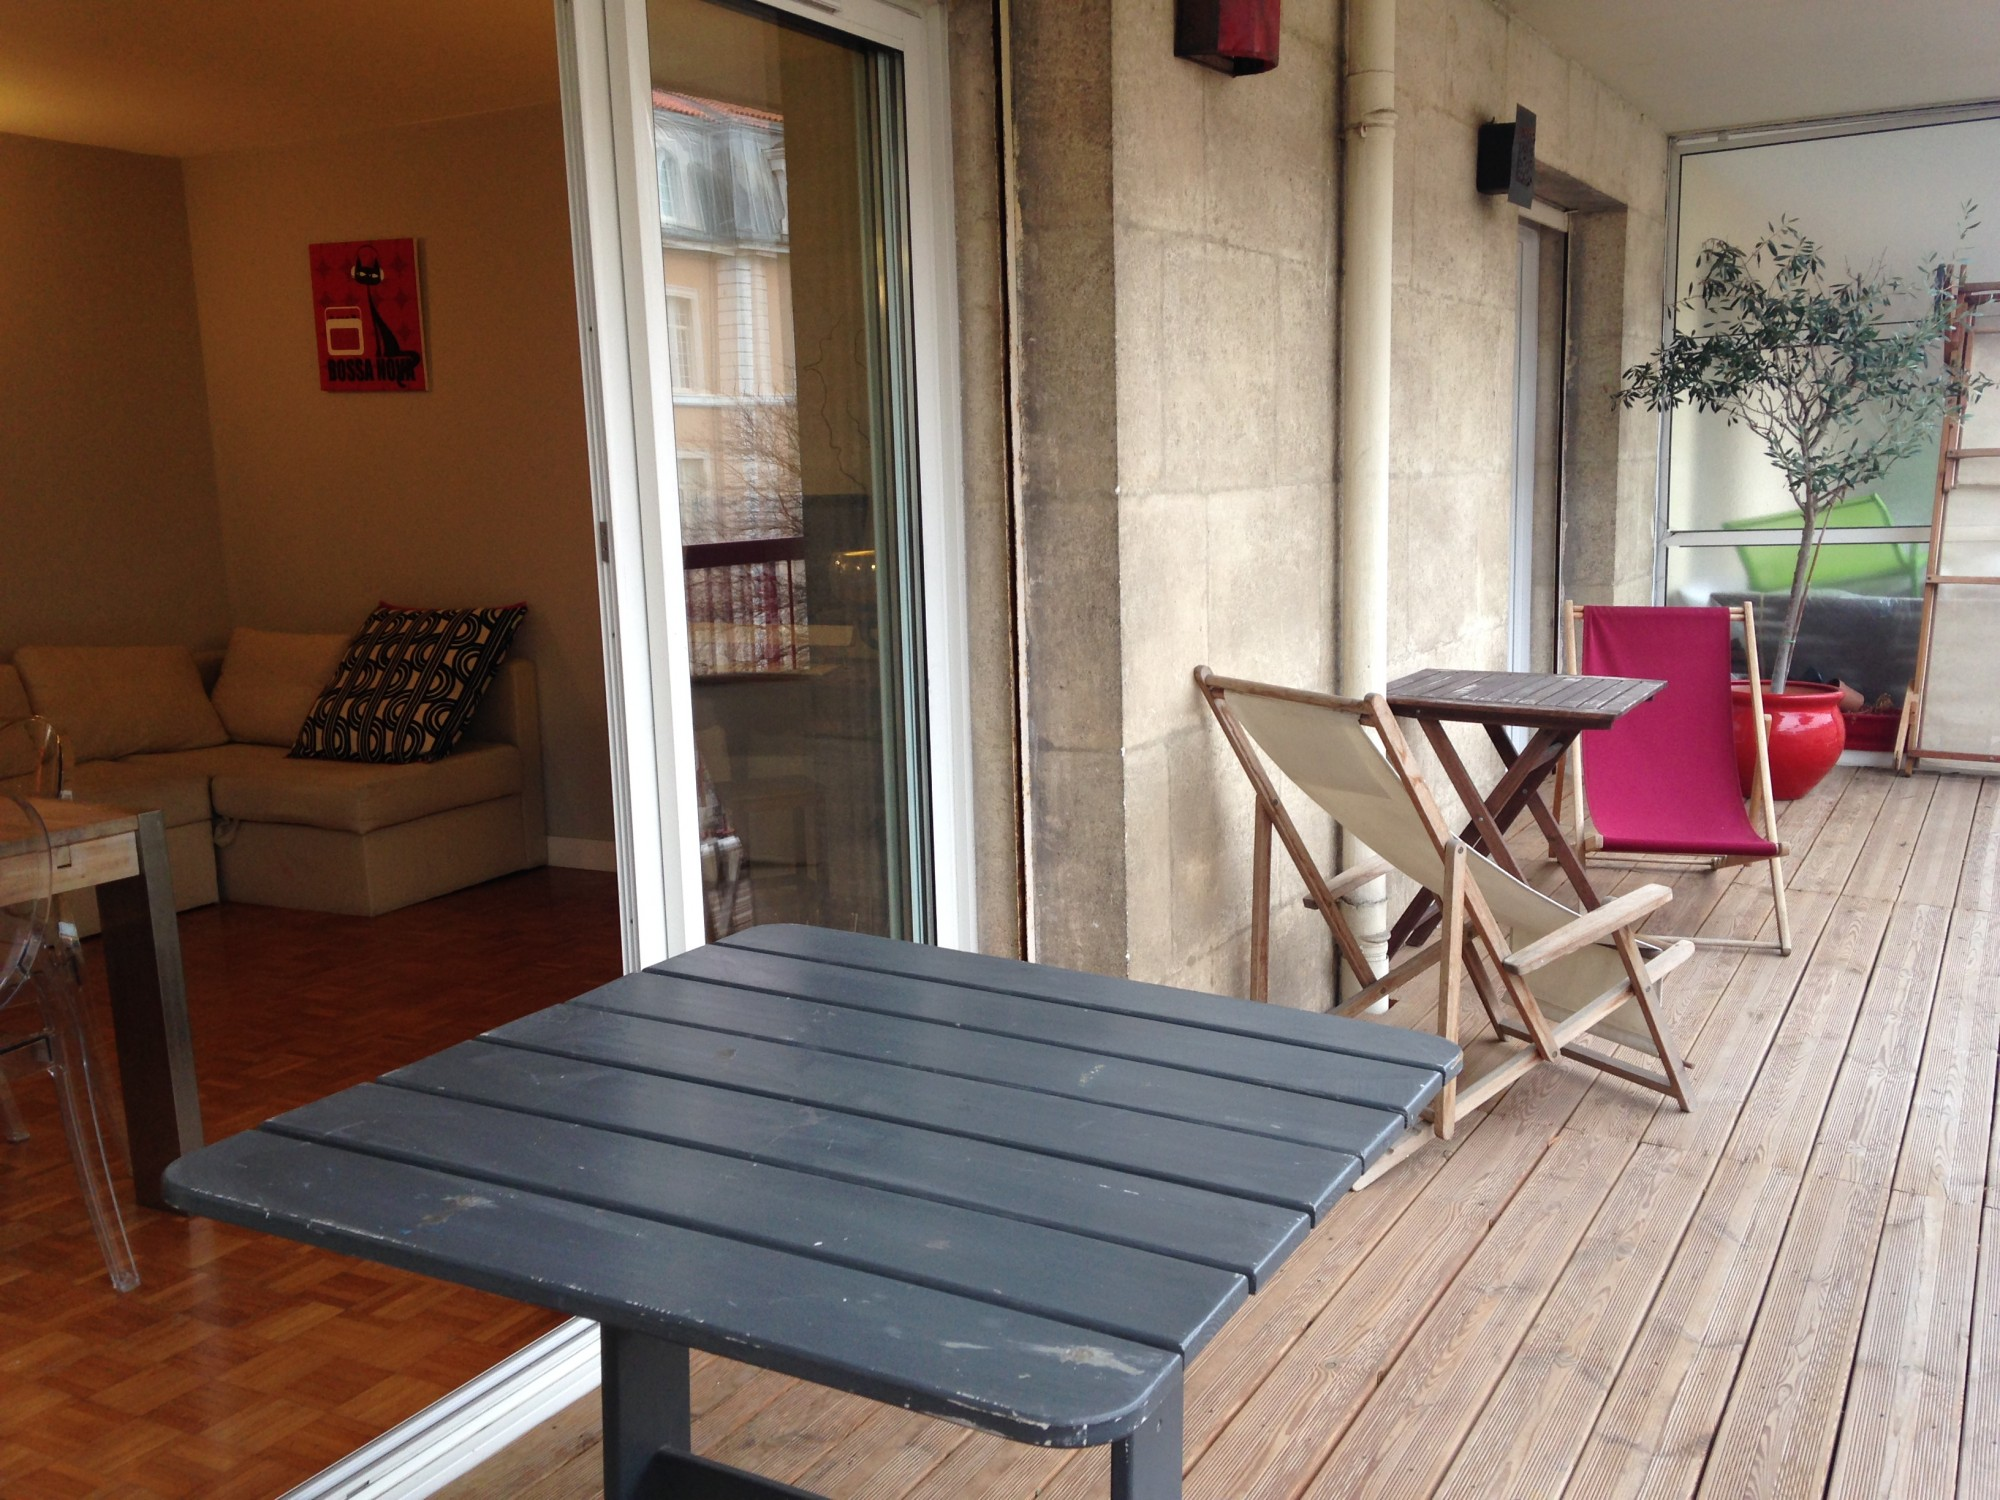 Ventes appartement t4 f4 marseille 13007 quartier for Appartement terrasse 13007